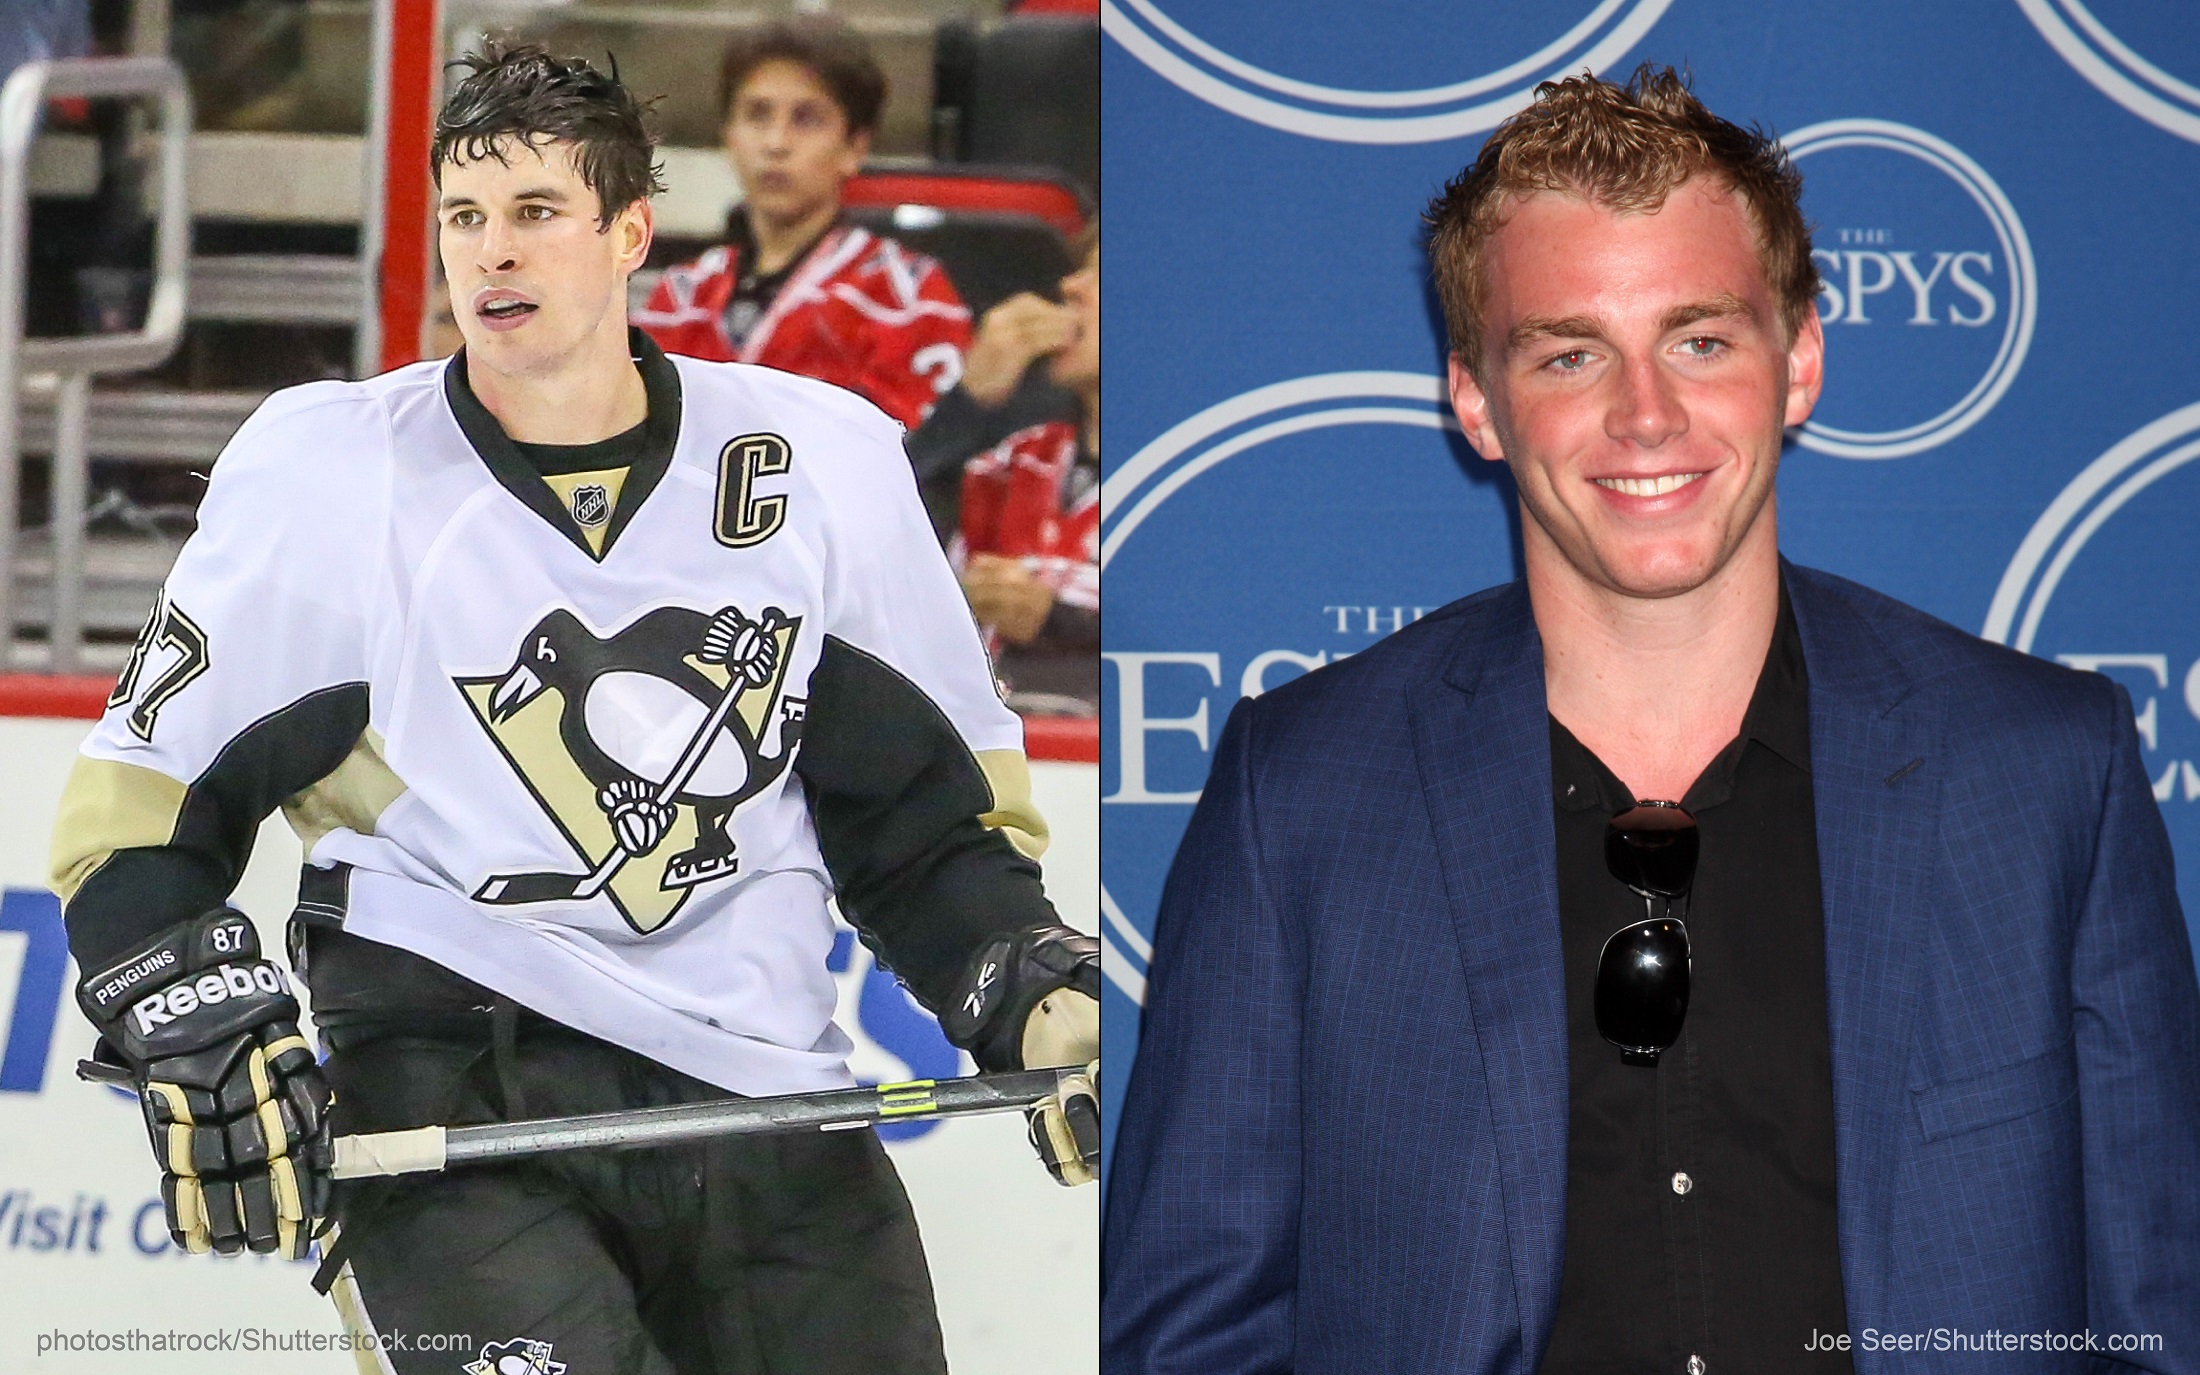 The highest paid NHL players like Sidney Crosby, Patrick Kane